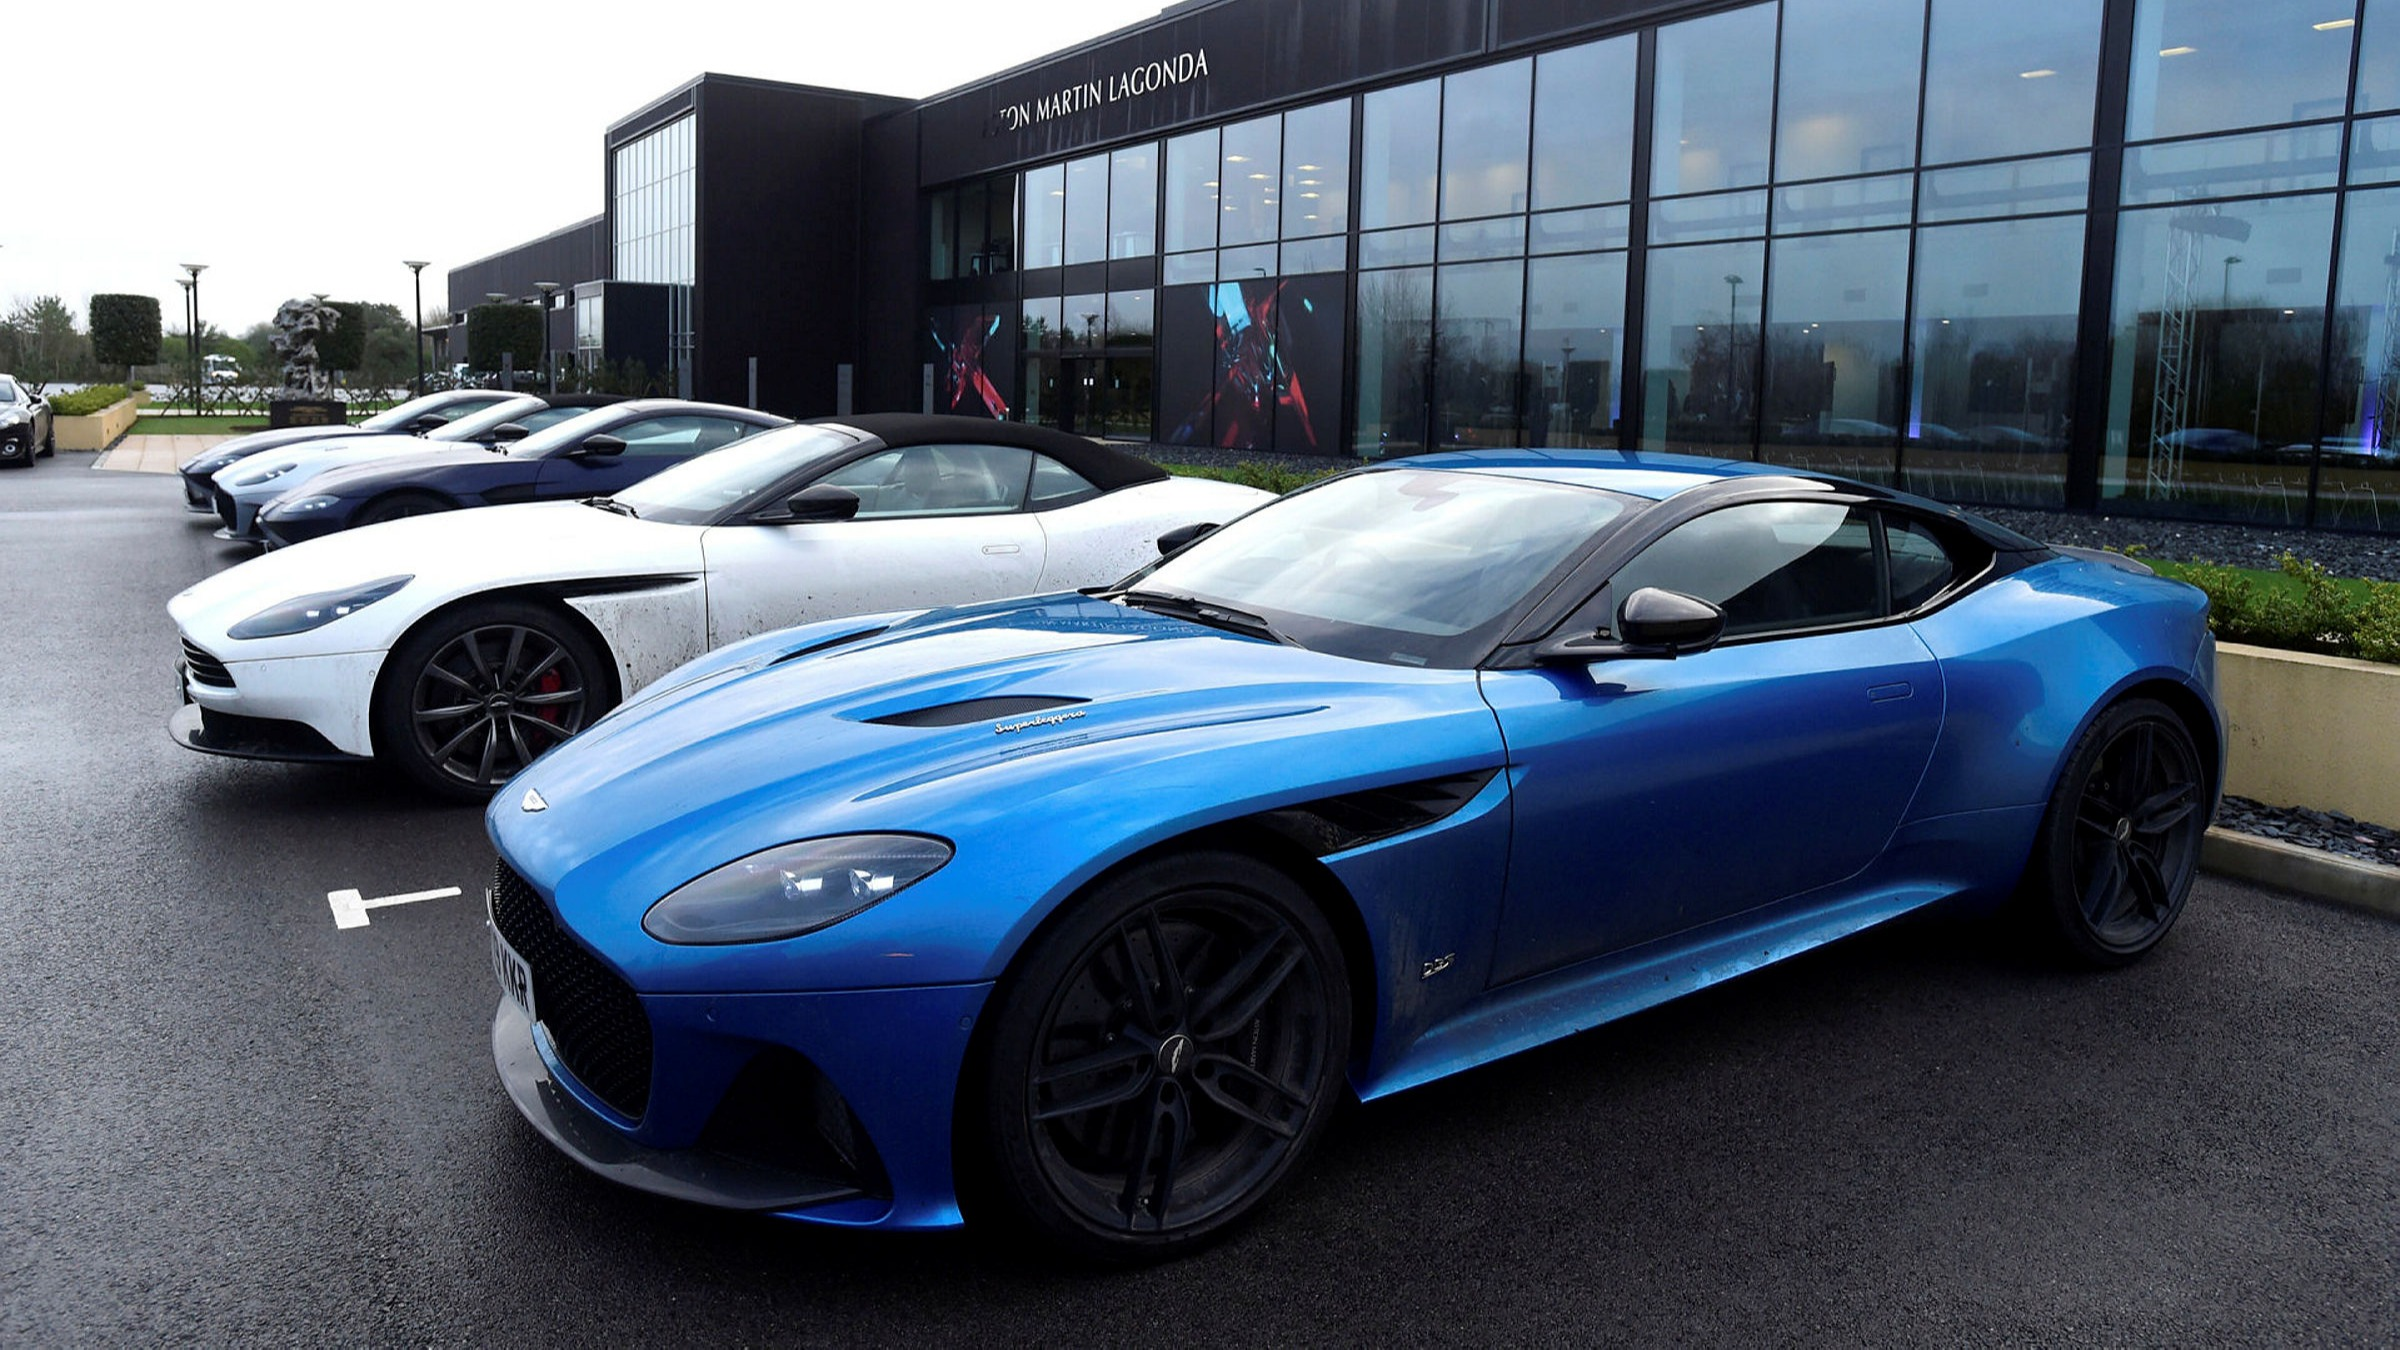 Aston Martin To Make Pure Internal Combustion Engine Cars After Uk Ban Financial Times